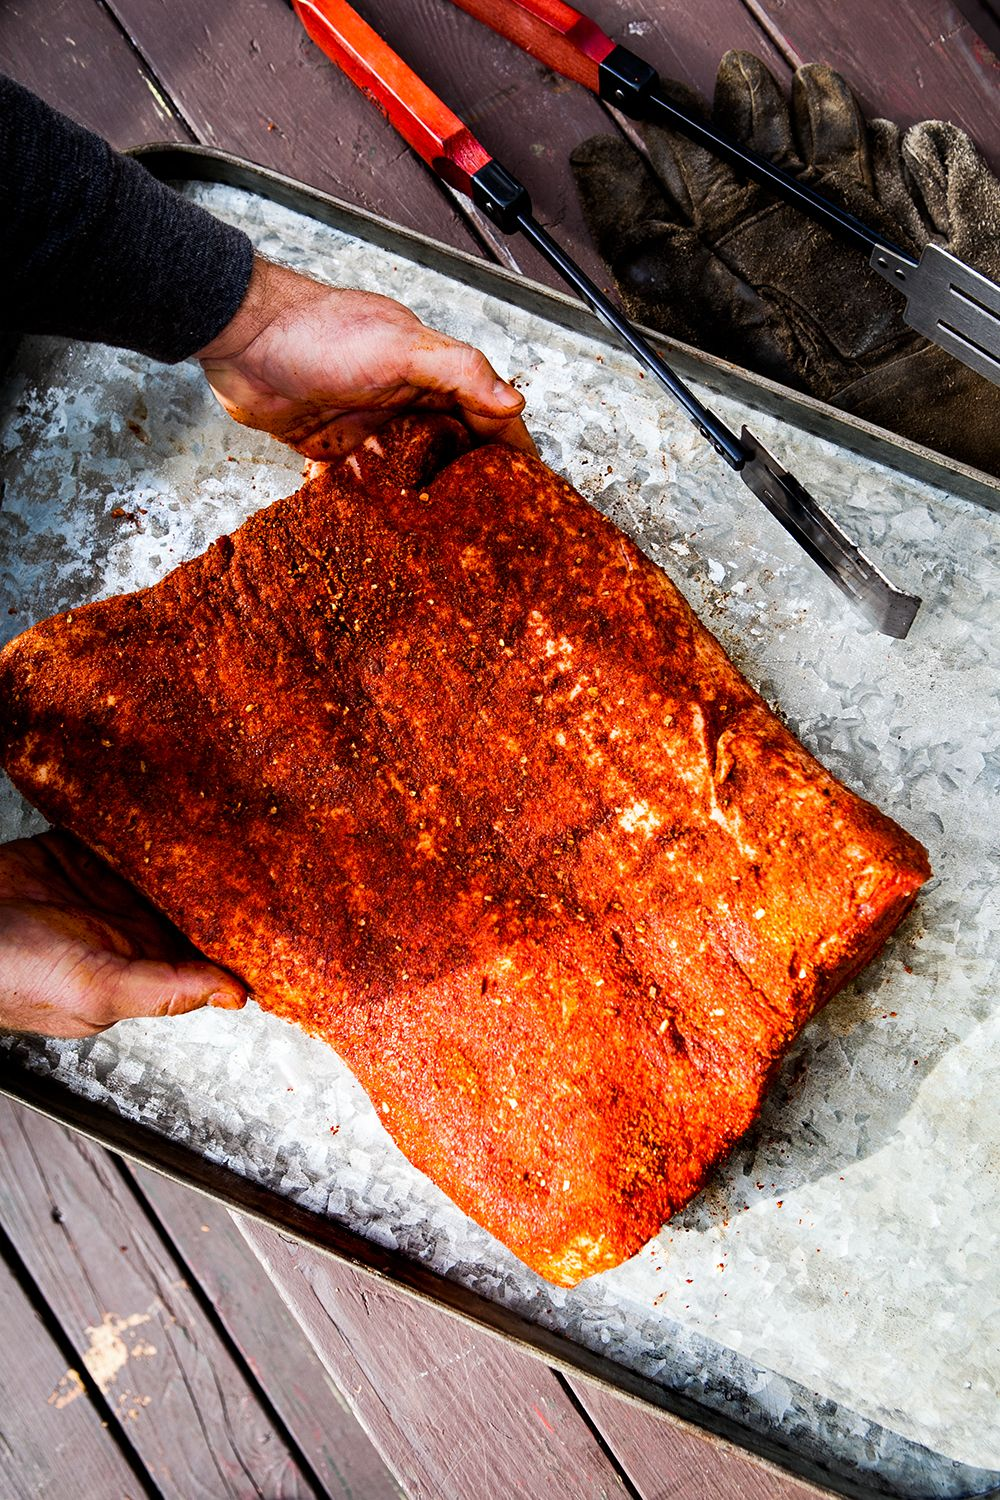 How to smoke a brisket in an electric smoker charbroil